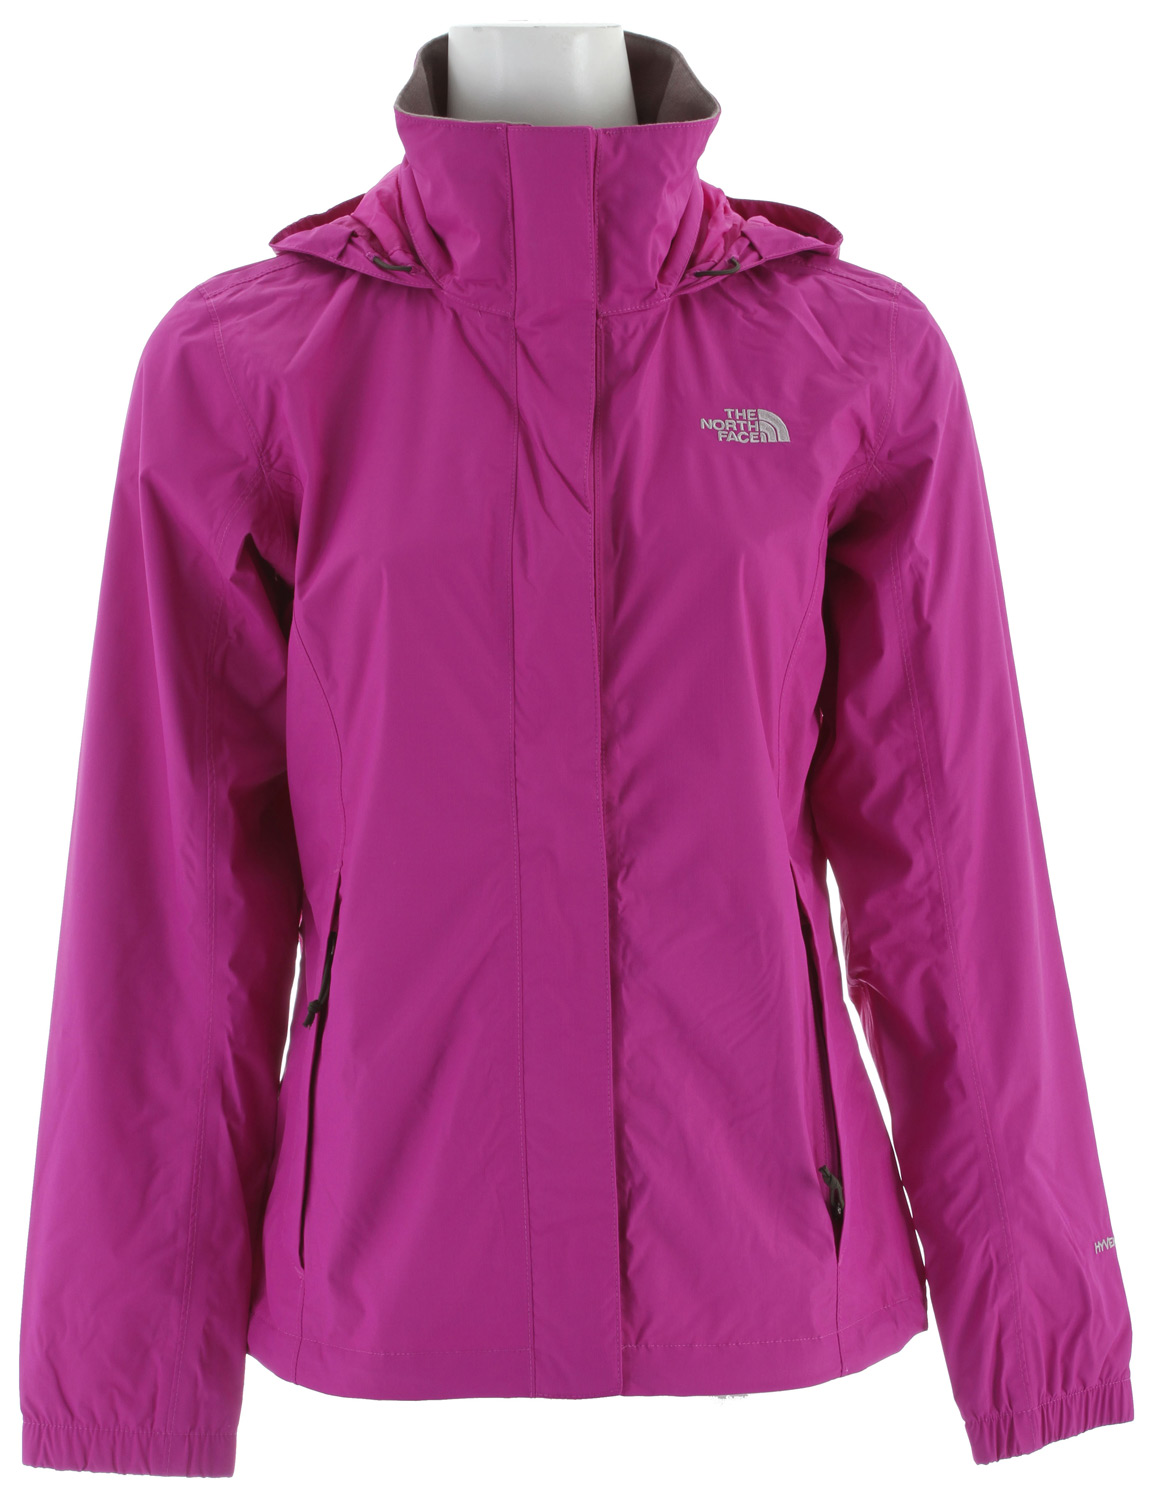 Mesh-lined, waterproof, breathable, seam-sealed jacket equipped for hard play in the worst weather. Key Features of the The North Face Resolve Jacket: Fabric: body: 70D 105 g/m2 (3.1 oz/yd2) nylon ripstop HyVent® 2L lining: mesh knit Standard fit Waterproof, breathable, seam sealed Mesh lined Attached, adjustable hood stows in collar Brushed chin guard Center front zip and Velcro® closure Two hand pockets Hem cinch-cord - $79.95